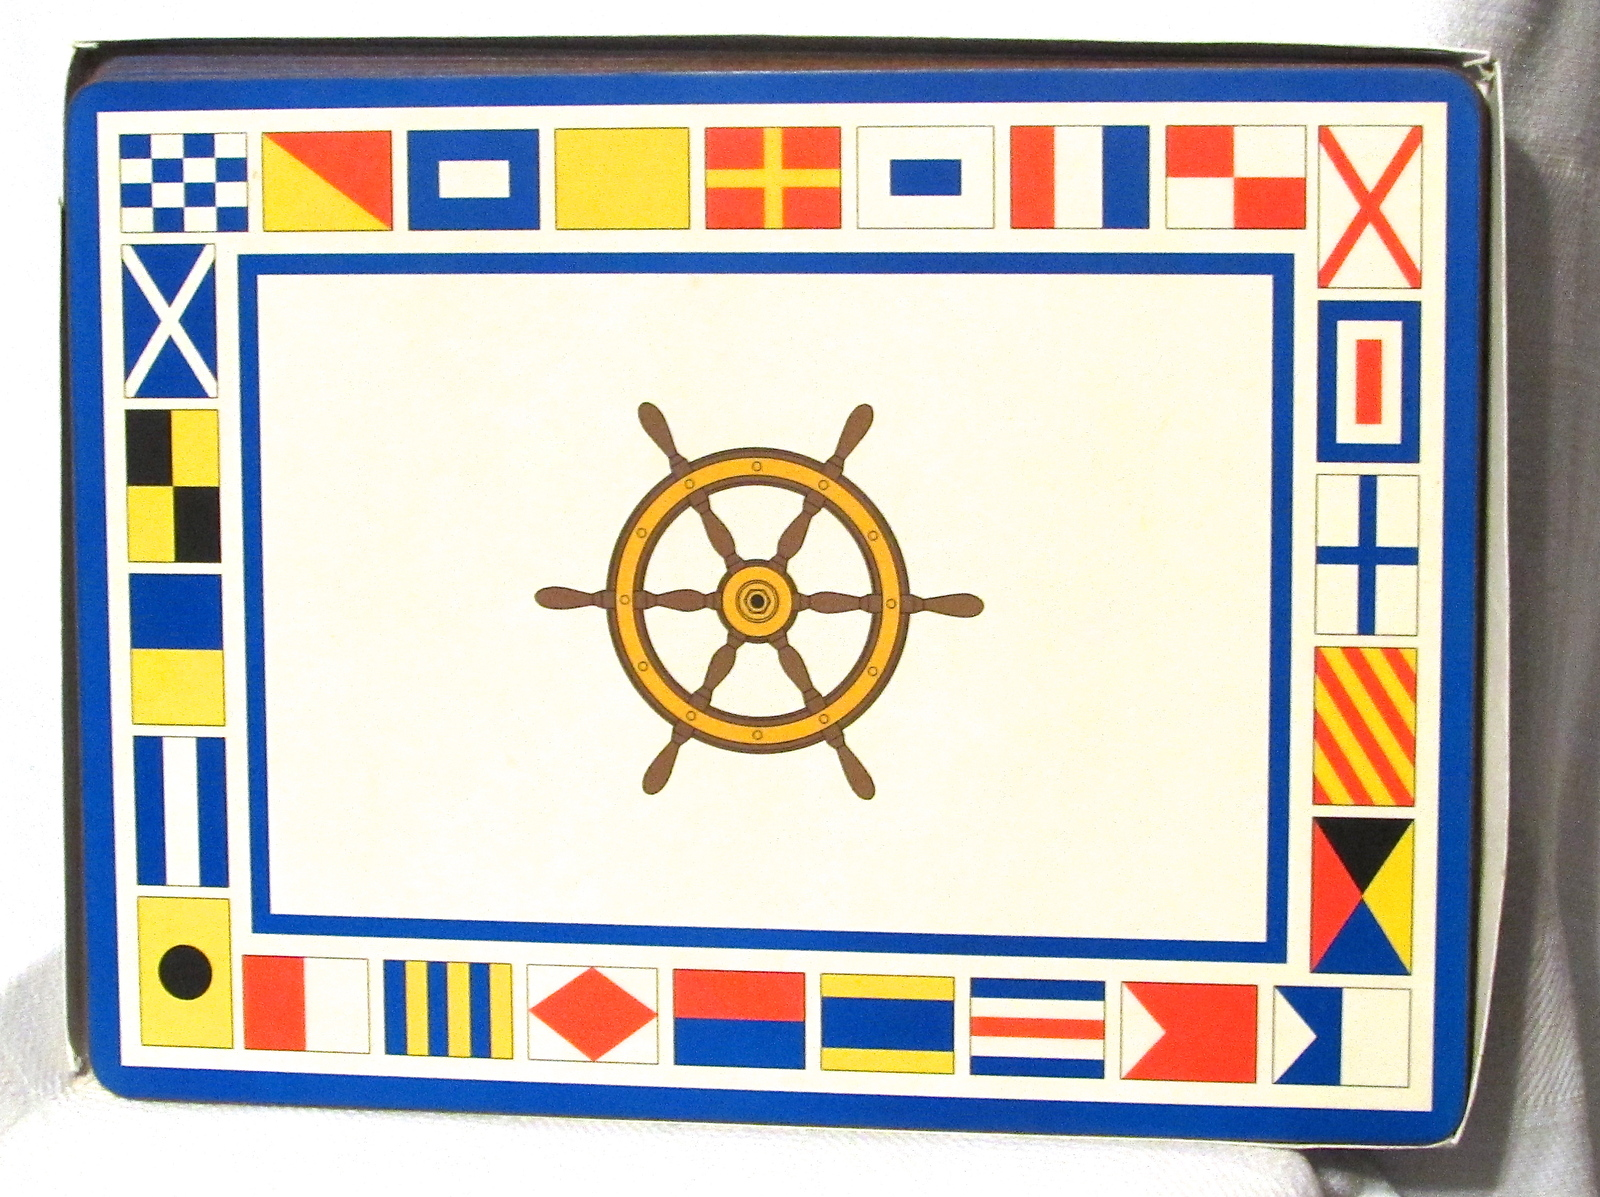 Nautical Corkboard Placemats - Vintage Set of 4